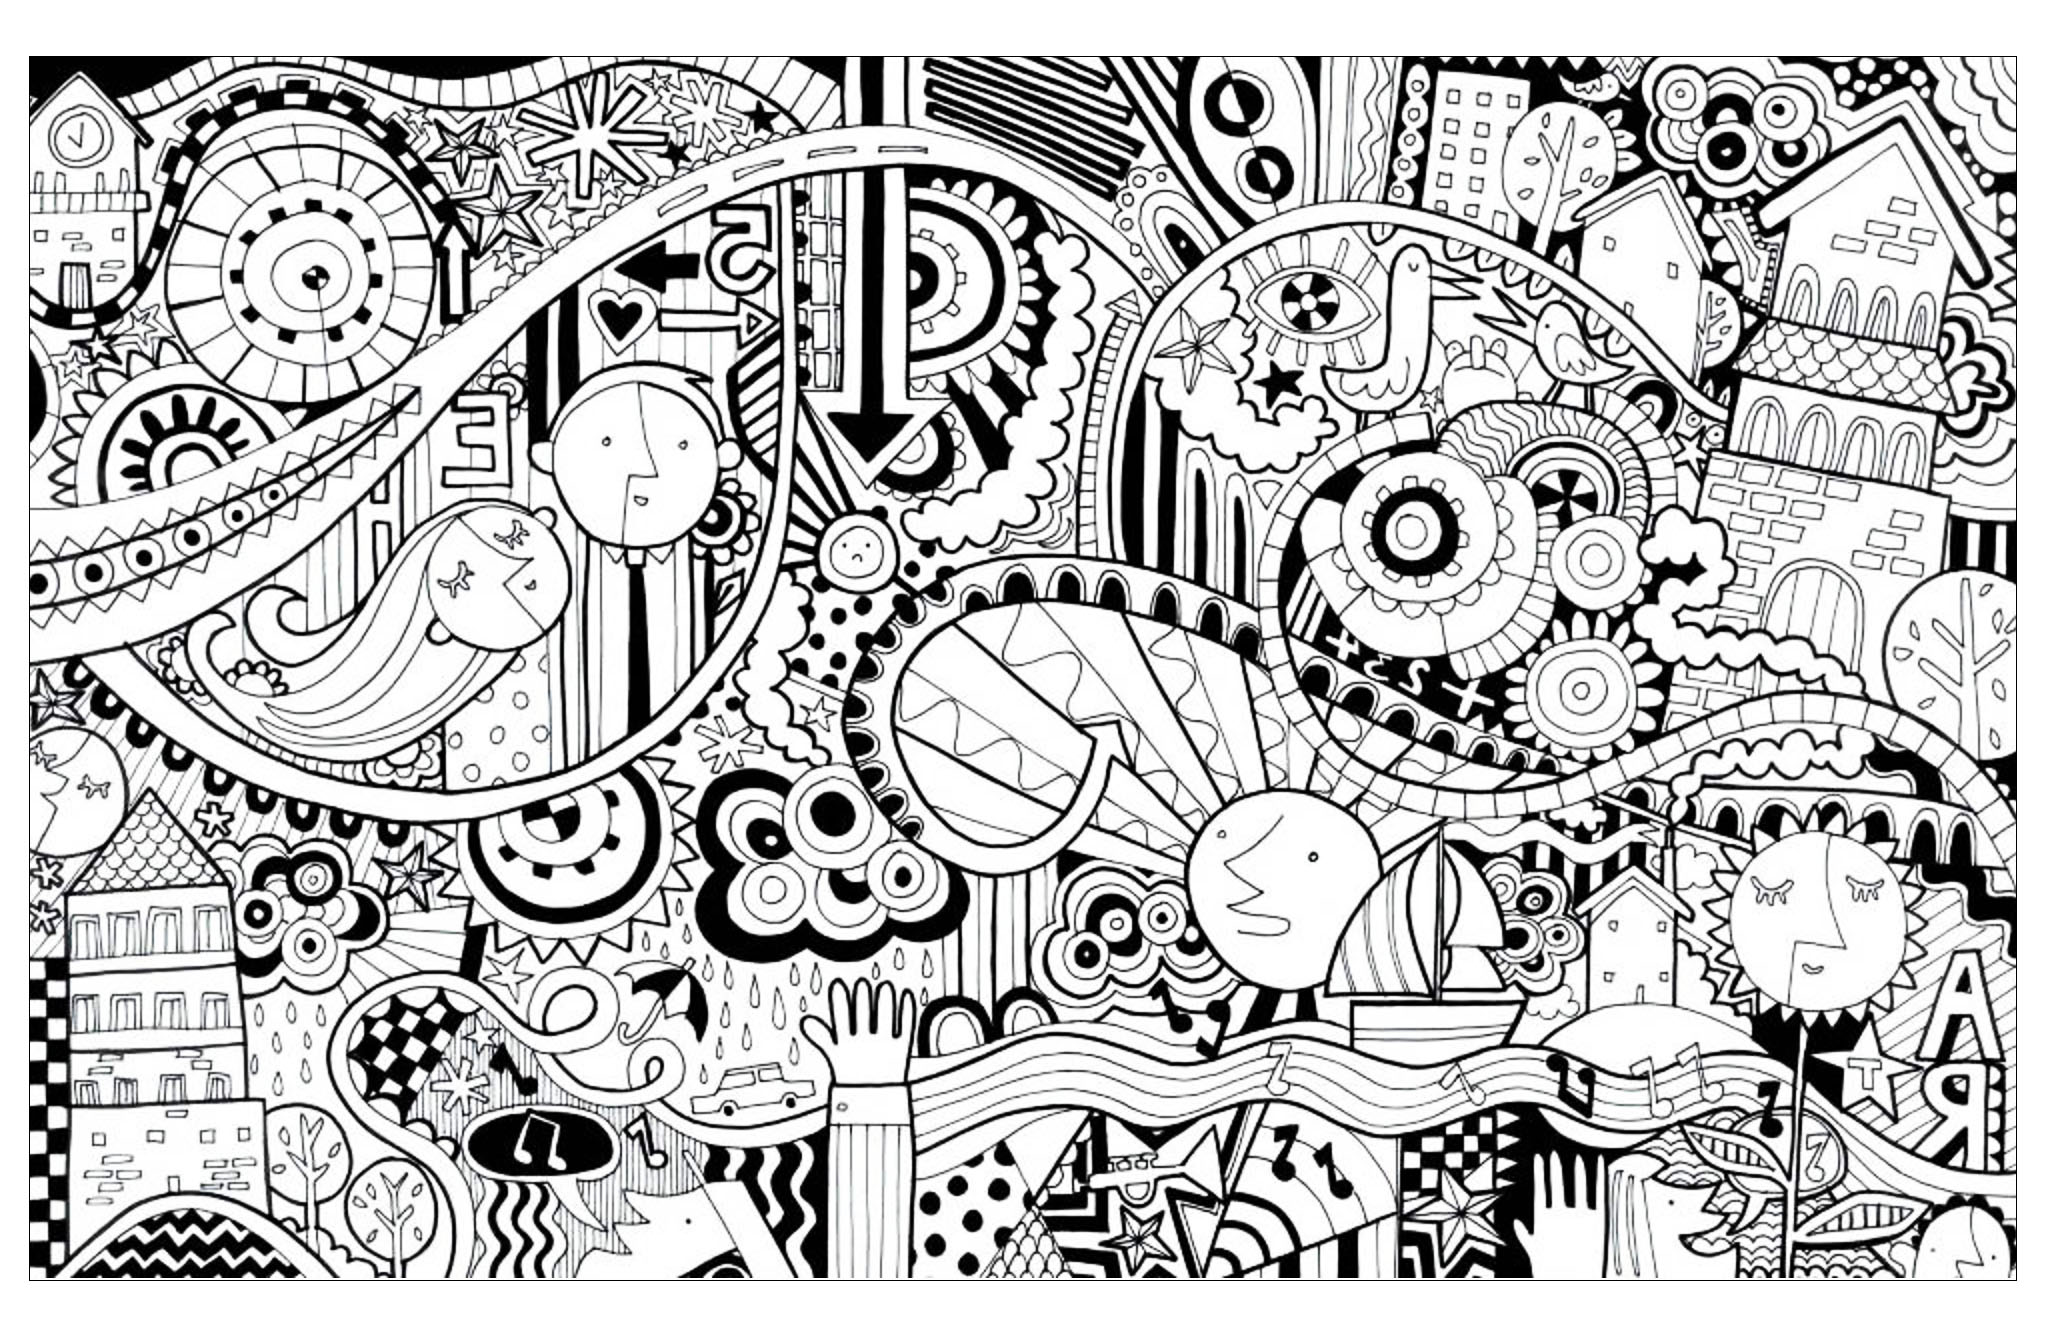 In this doodle drawing to color, you will find houses, boats, trees, strange faces ... and various abstract patterns